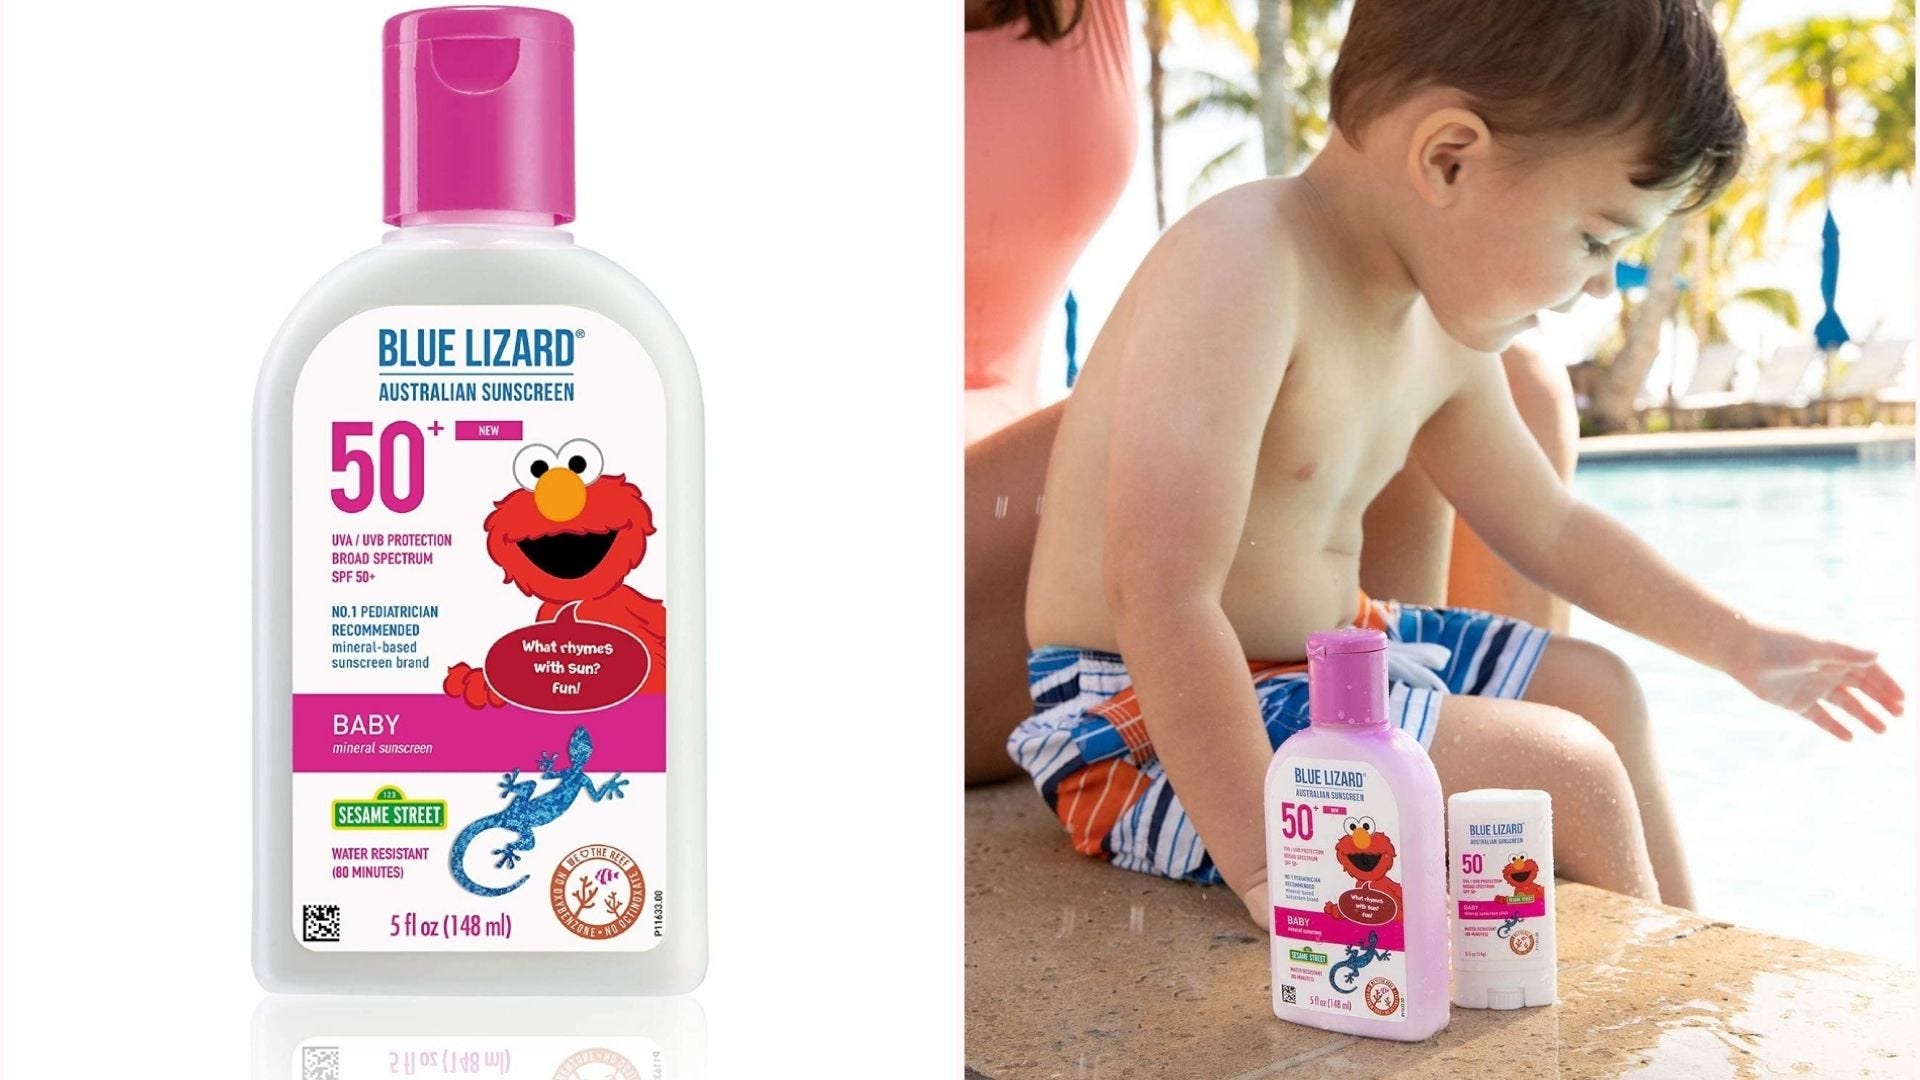 Blue Lizard Australian sunscreen with Elmo on the front of the bottle; a bottle rests by a young child sitting by a pool